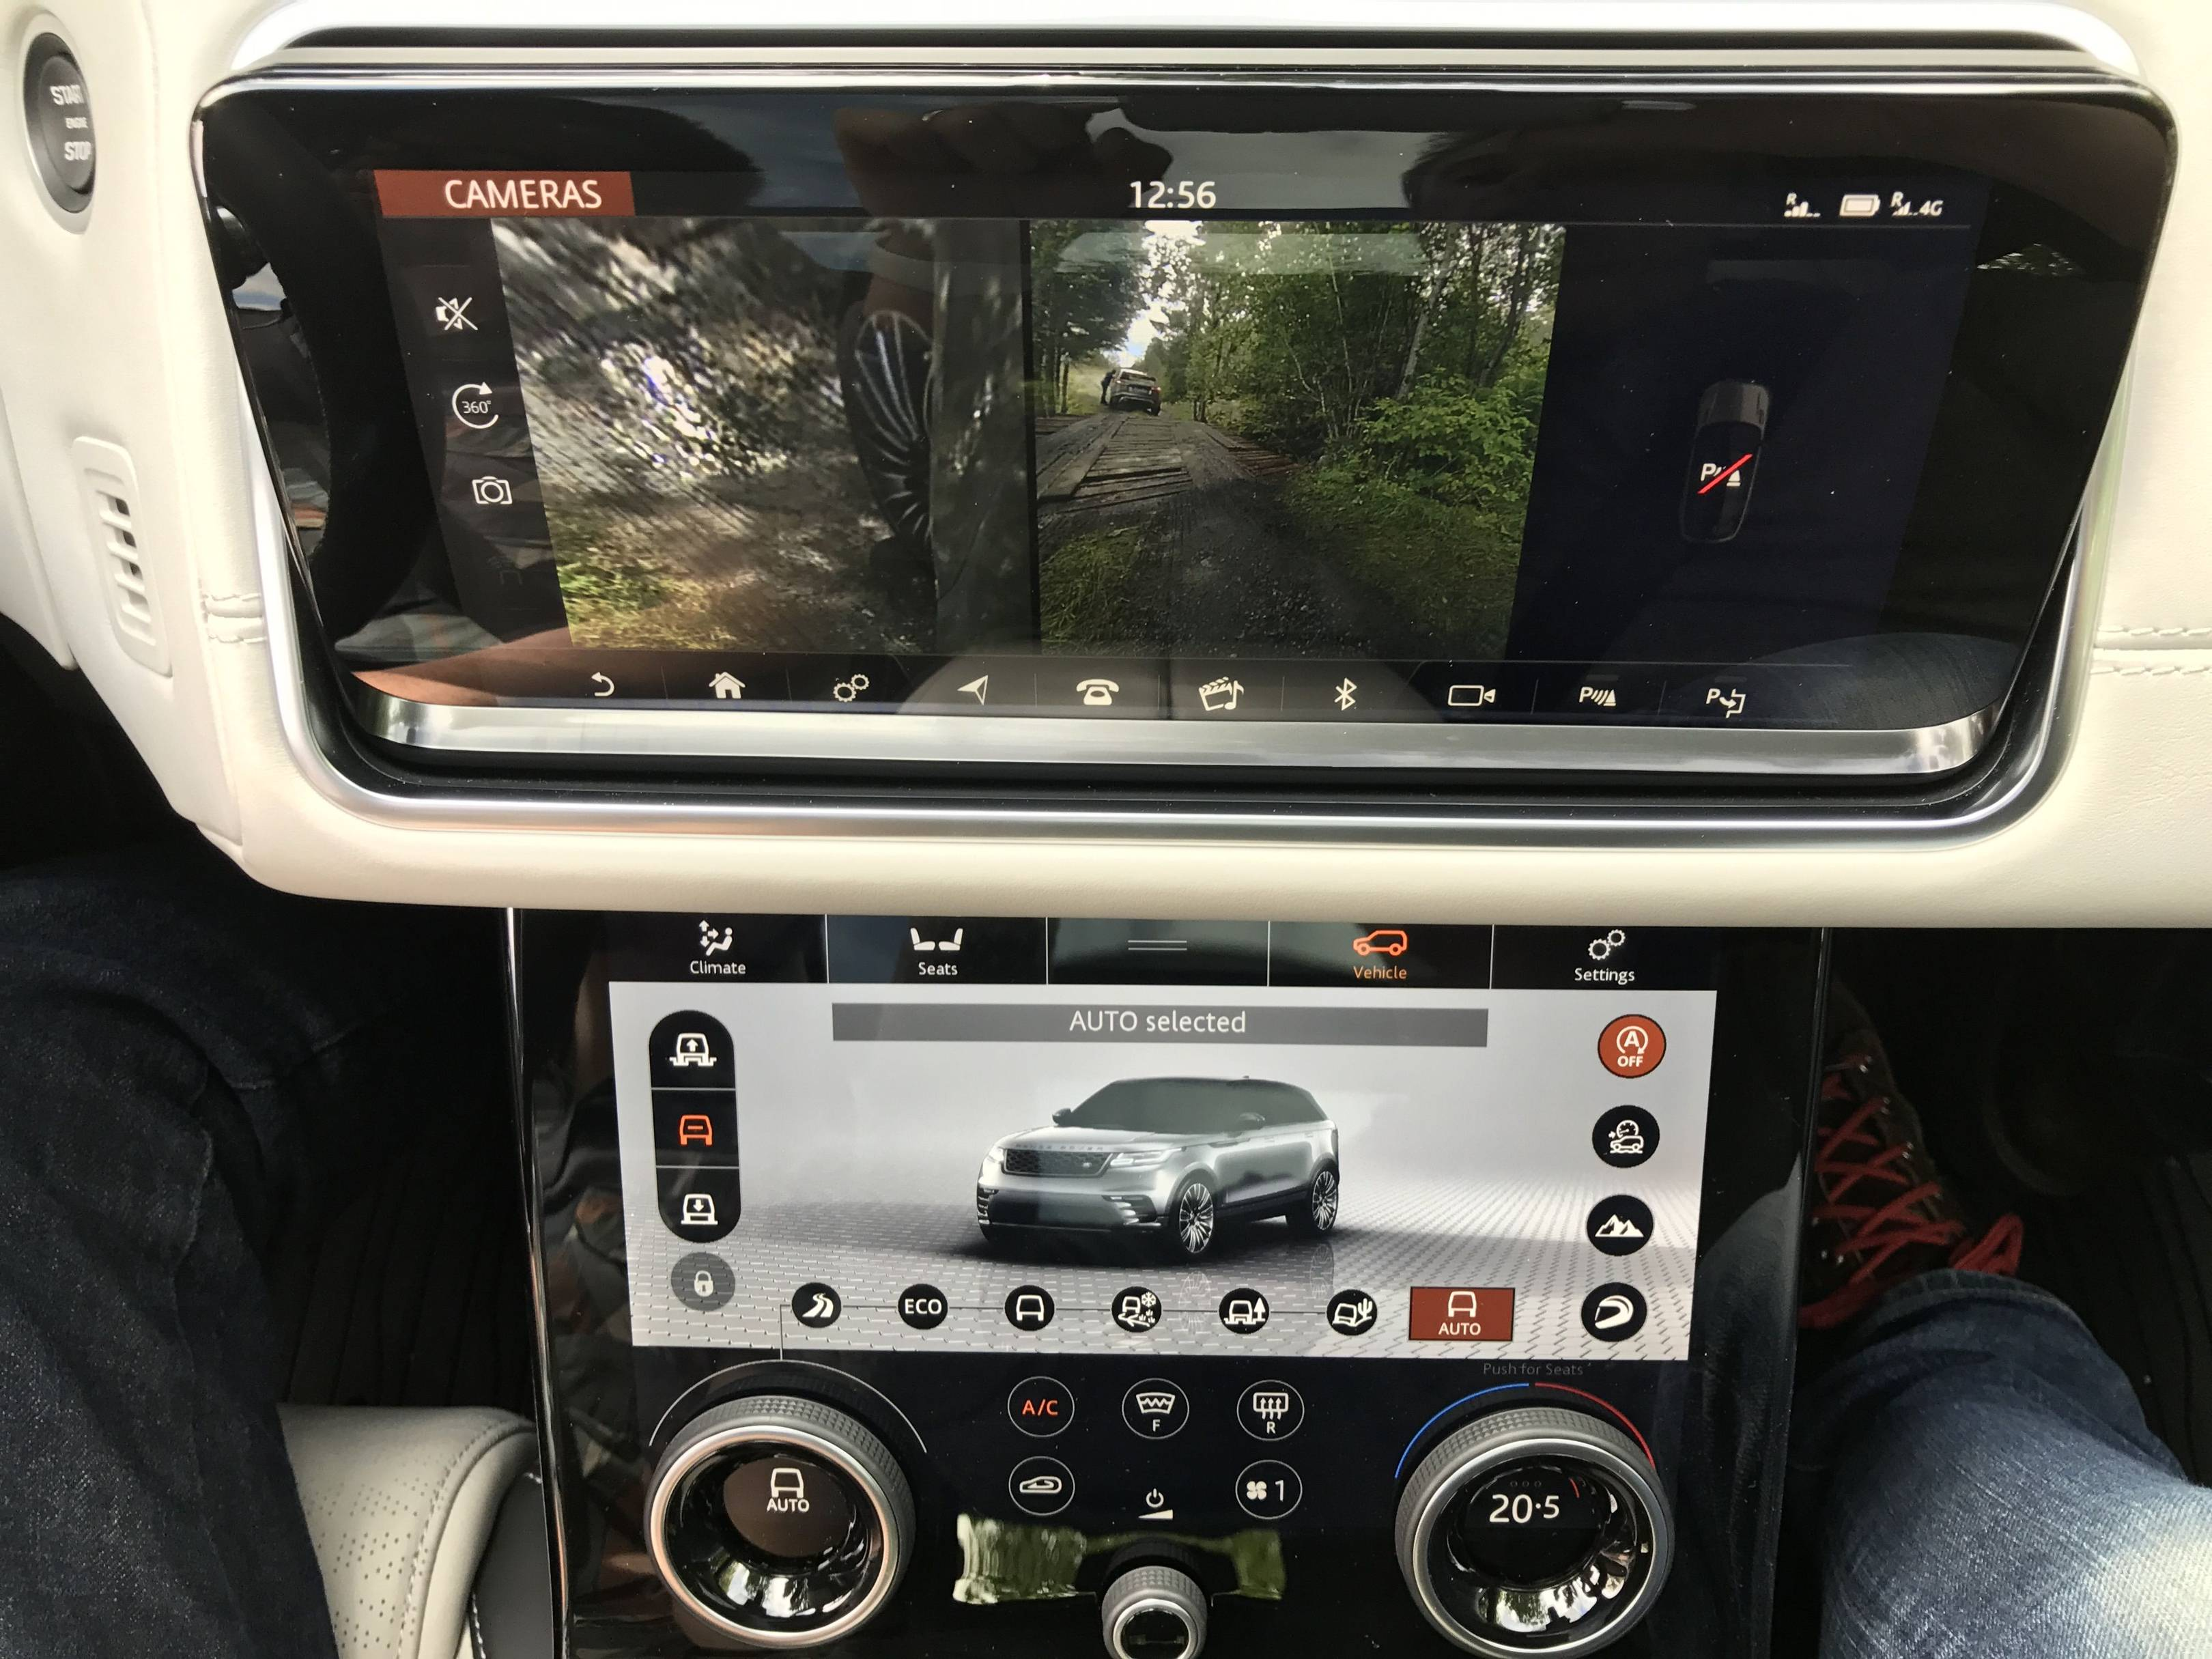 New Range Rover Velar Review A Huge Success Despite Some Niggles Building Diy Computer Parts Electronics Land Smart Other Wired Uk